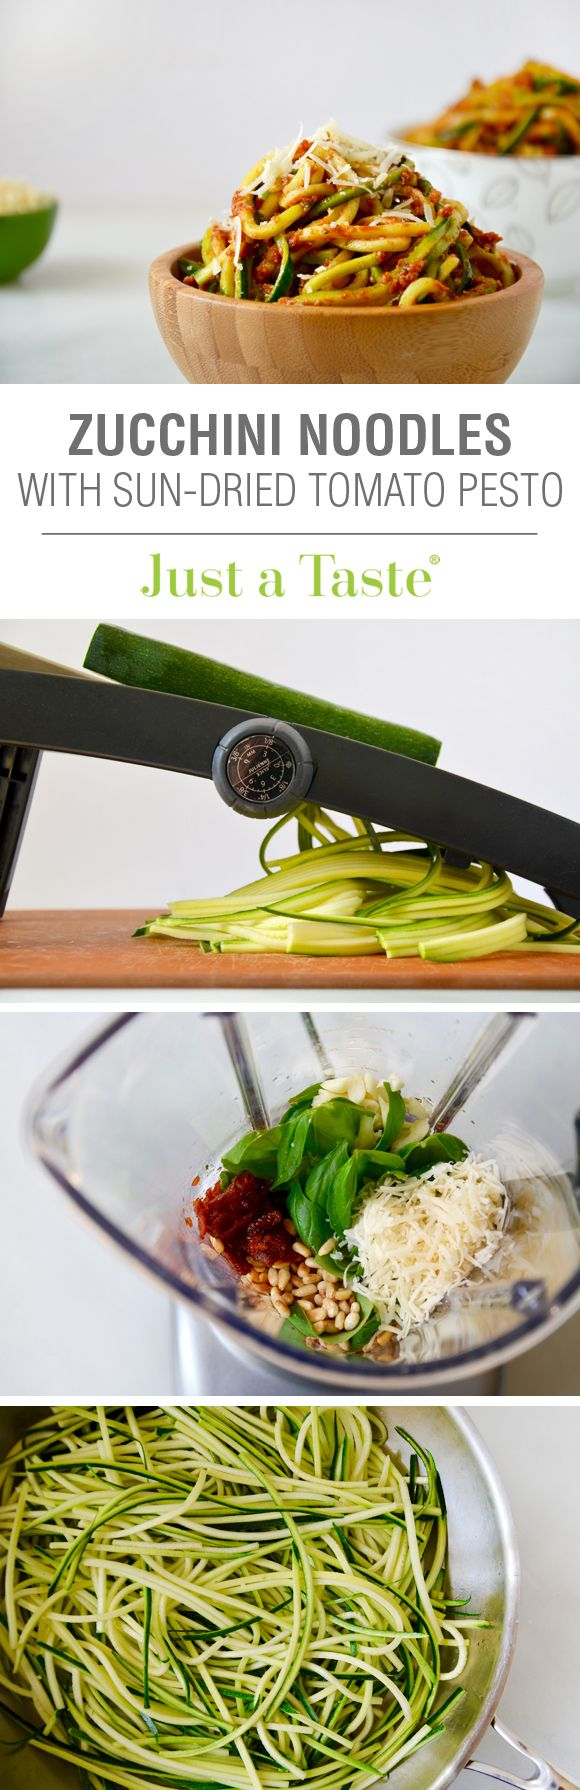 Zucchini Noodles with Sun-Dried Tomato Pesto #recipe from @justataste